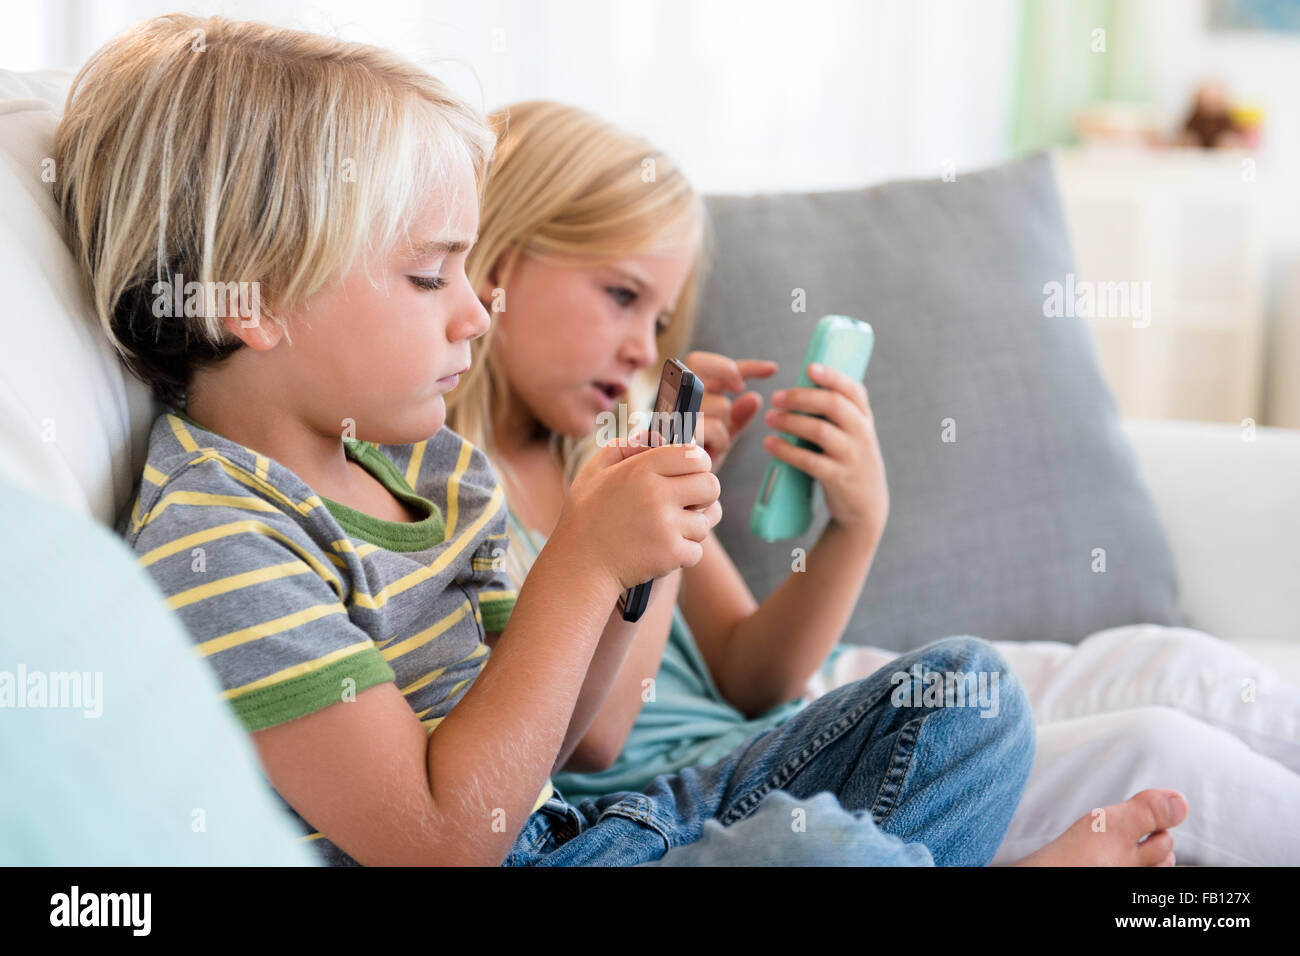 Boy (4-5) and girl (6-7) playing games on smart phones - Stock Image